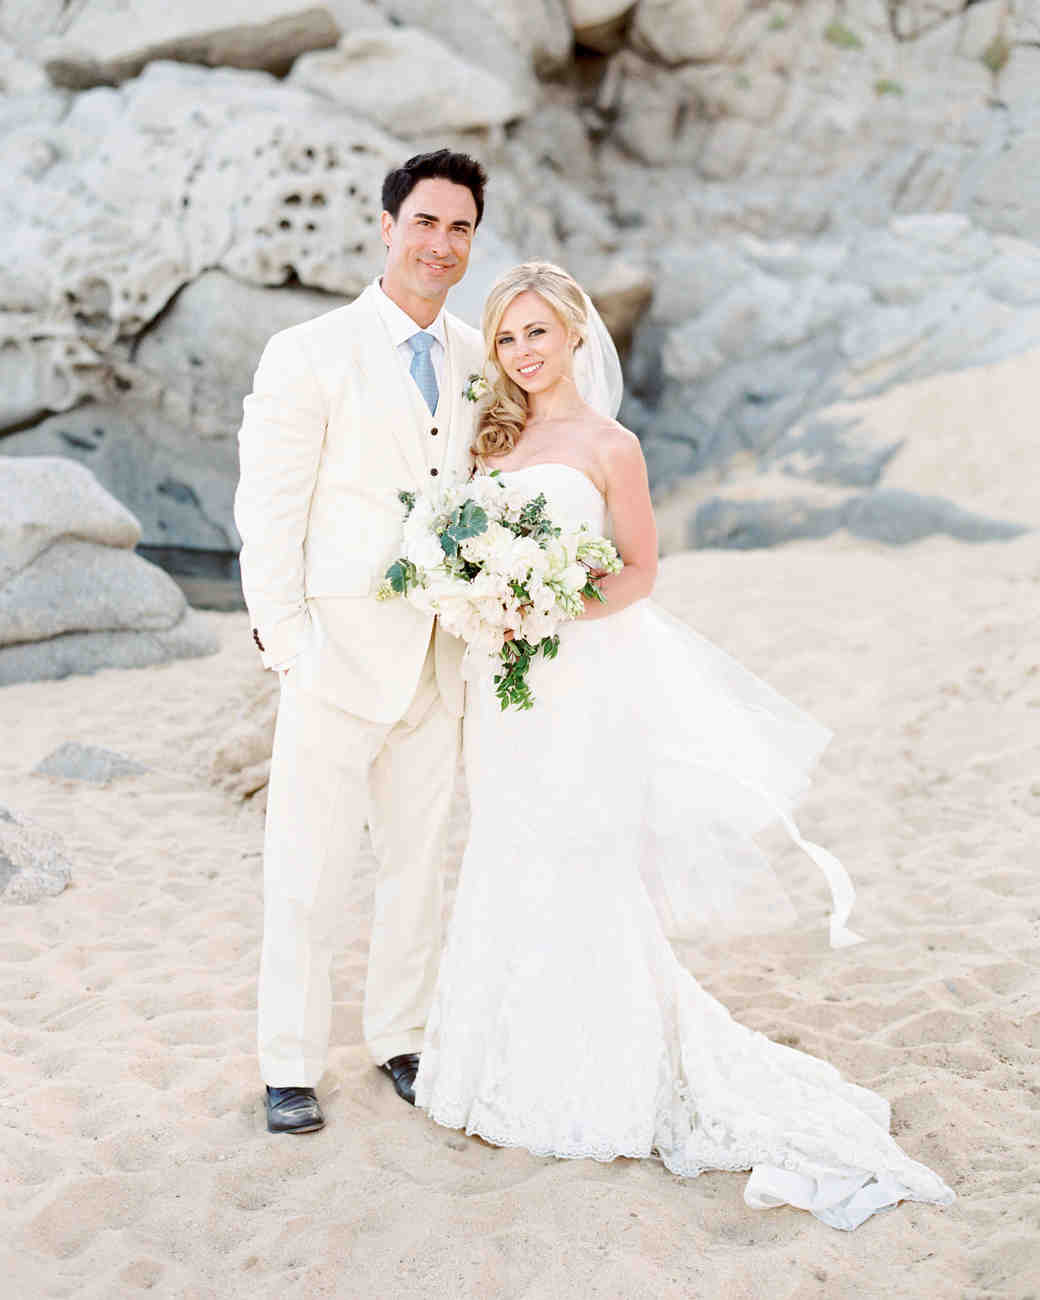 Honeymoon Clothes For Bride: 25 Dreamy Beach Wedding Dresses